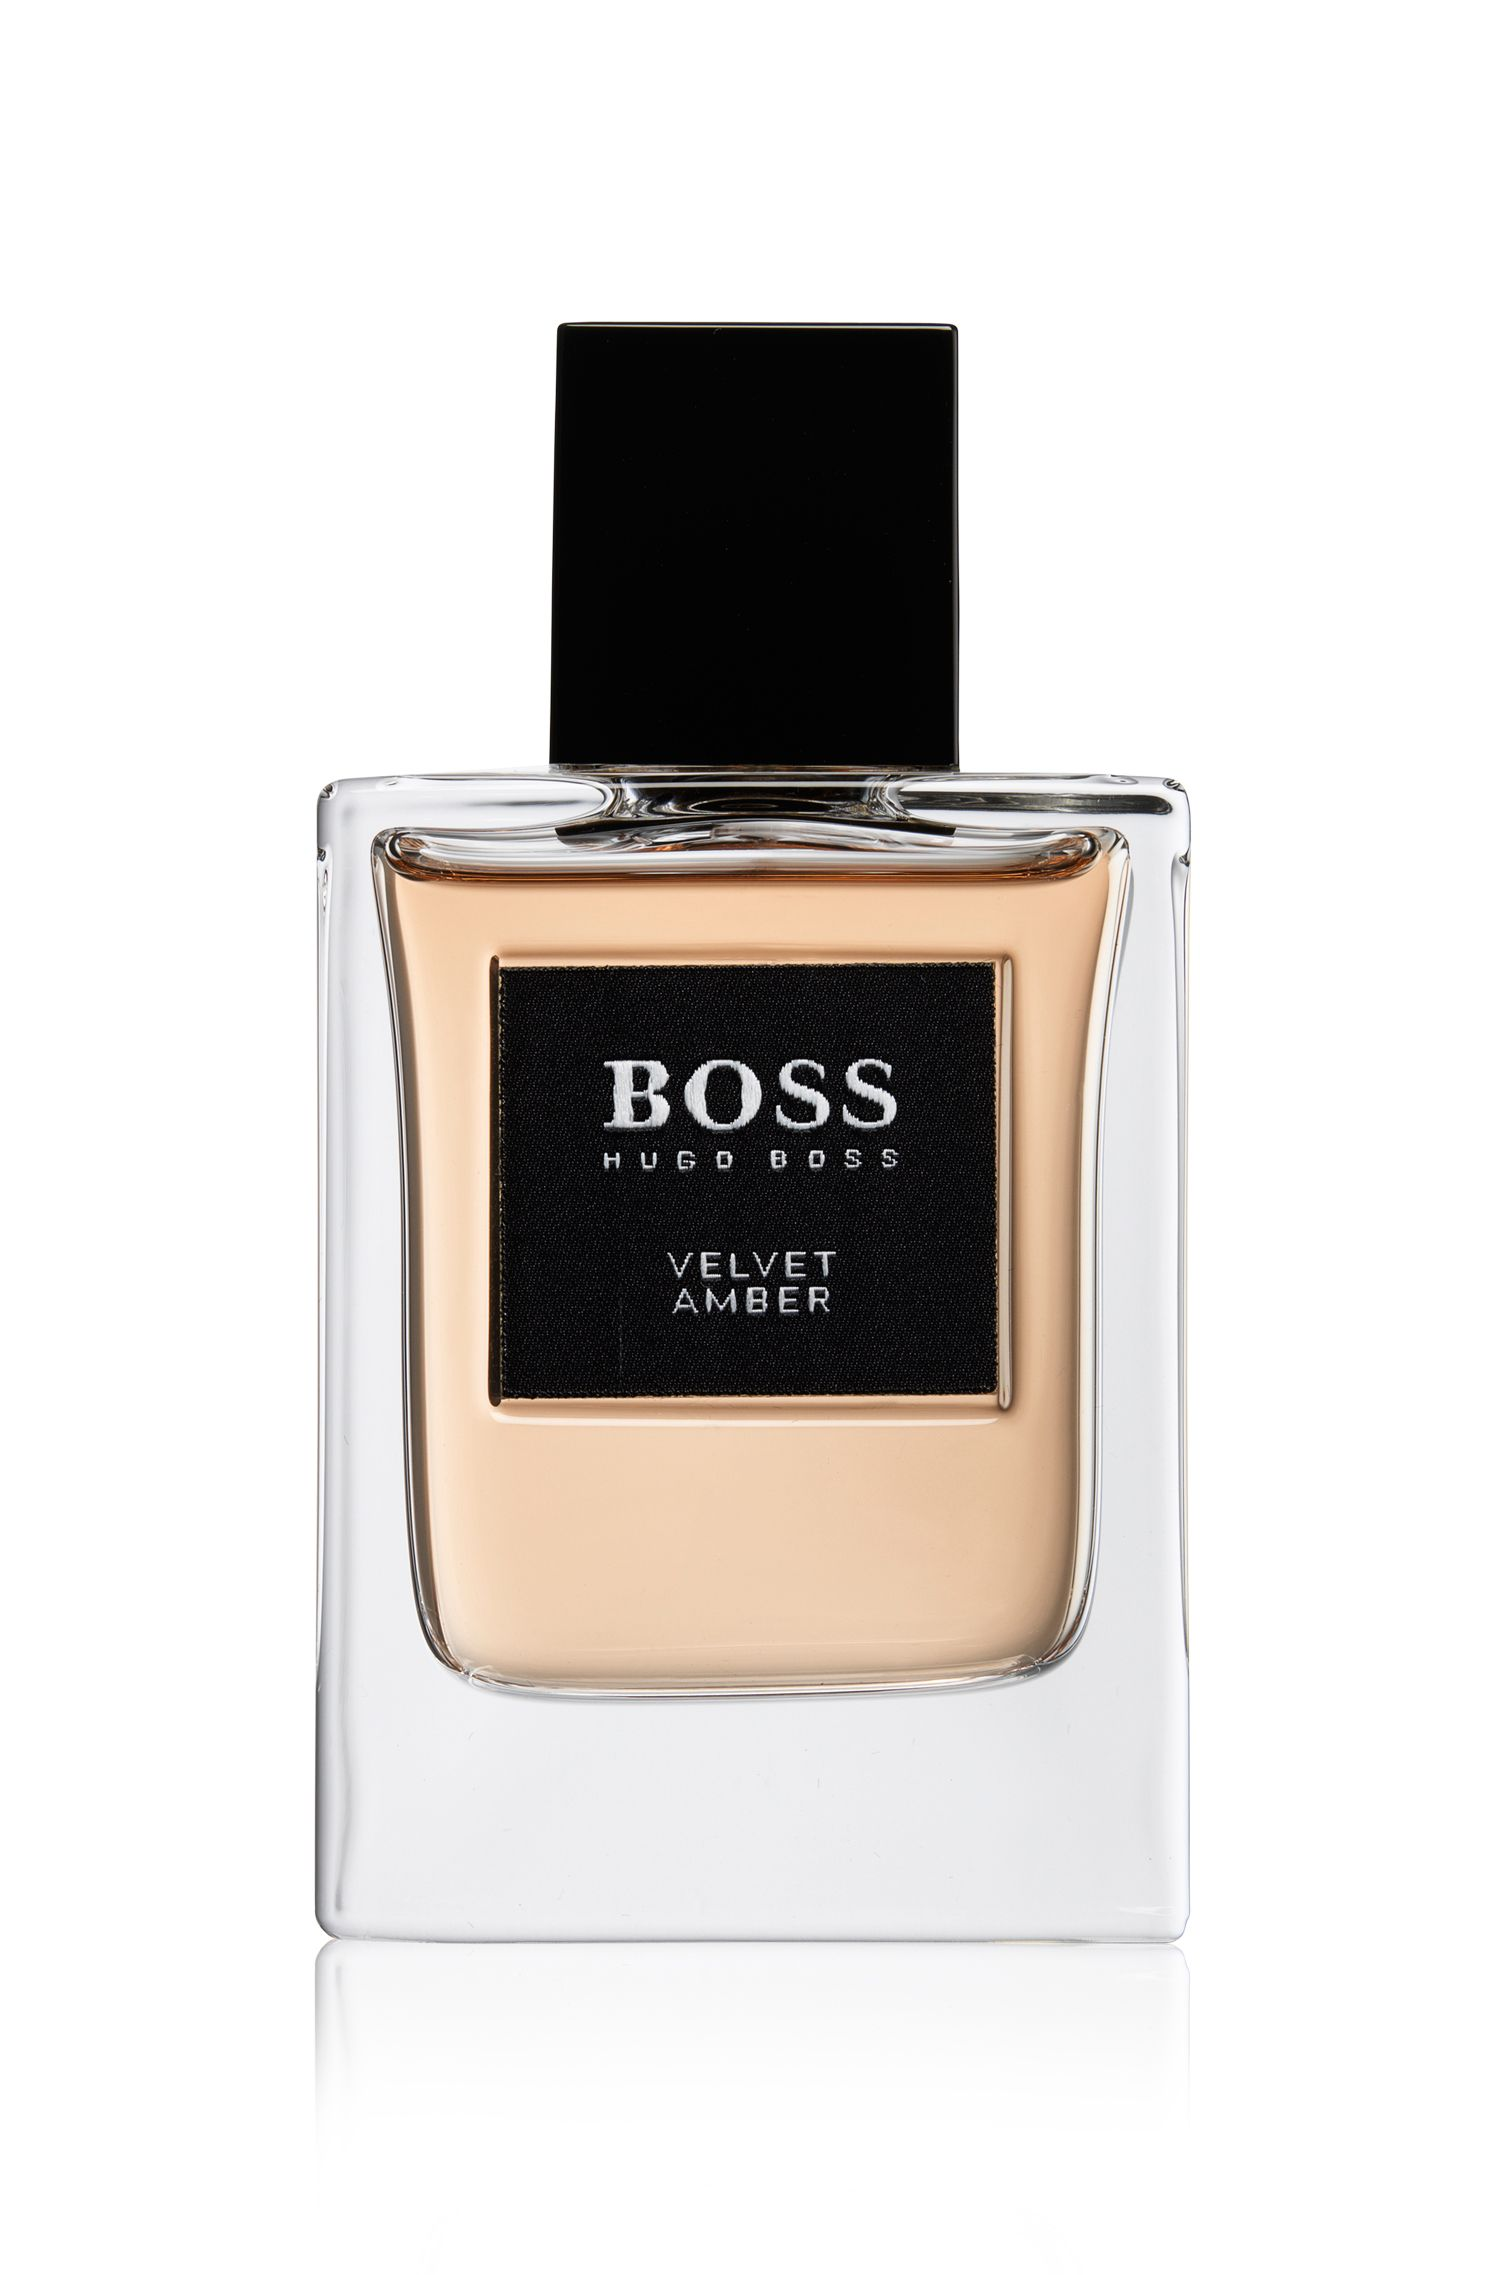 'BOSS The Collection' | 1.7 fl. oz. (50 mL) Velvet Amber Eau de Toilette,